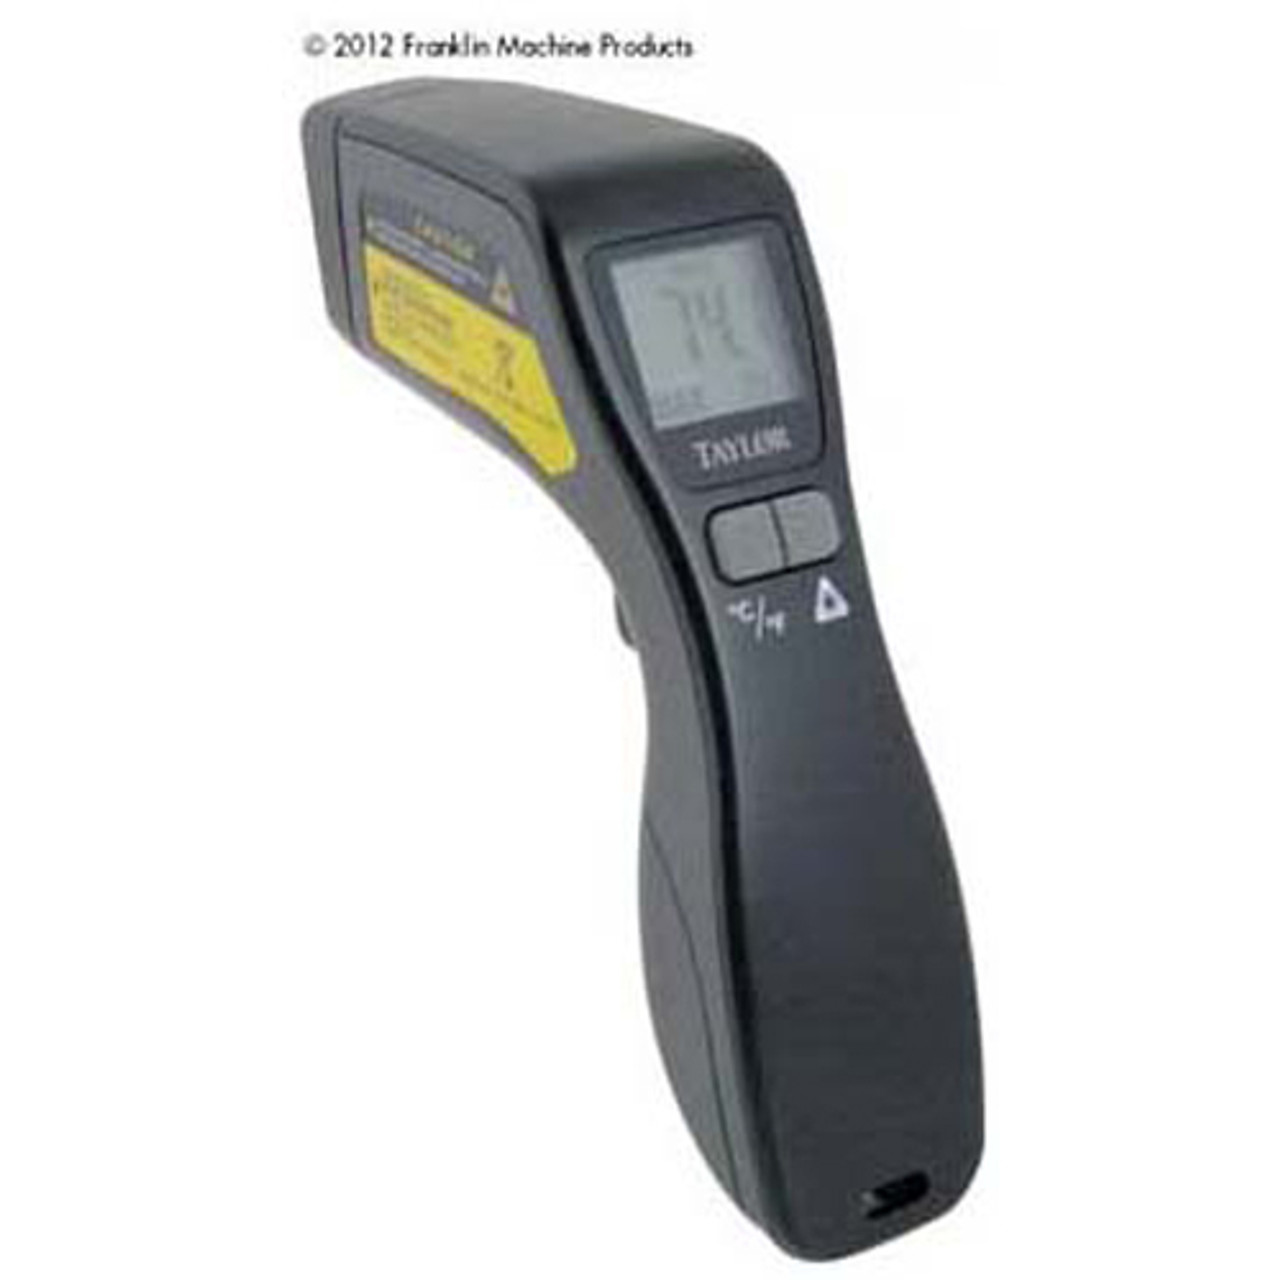 TAYLOR THERMOMETER 9523 THERMOMETERINFRARED